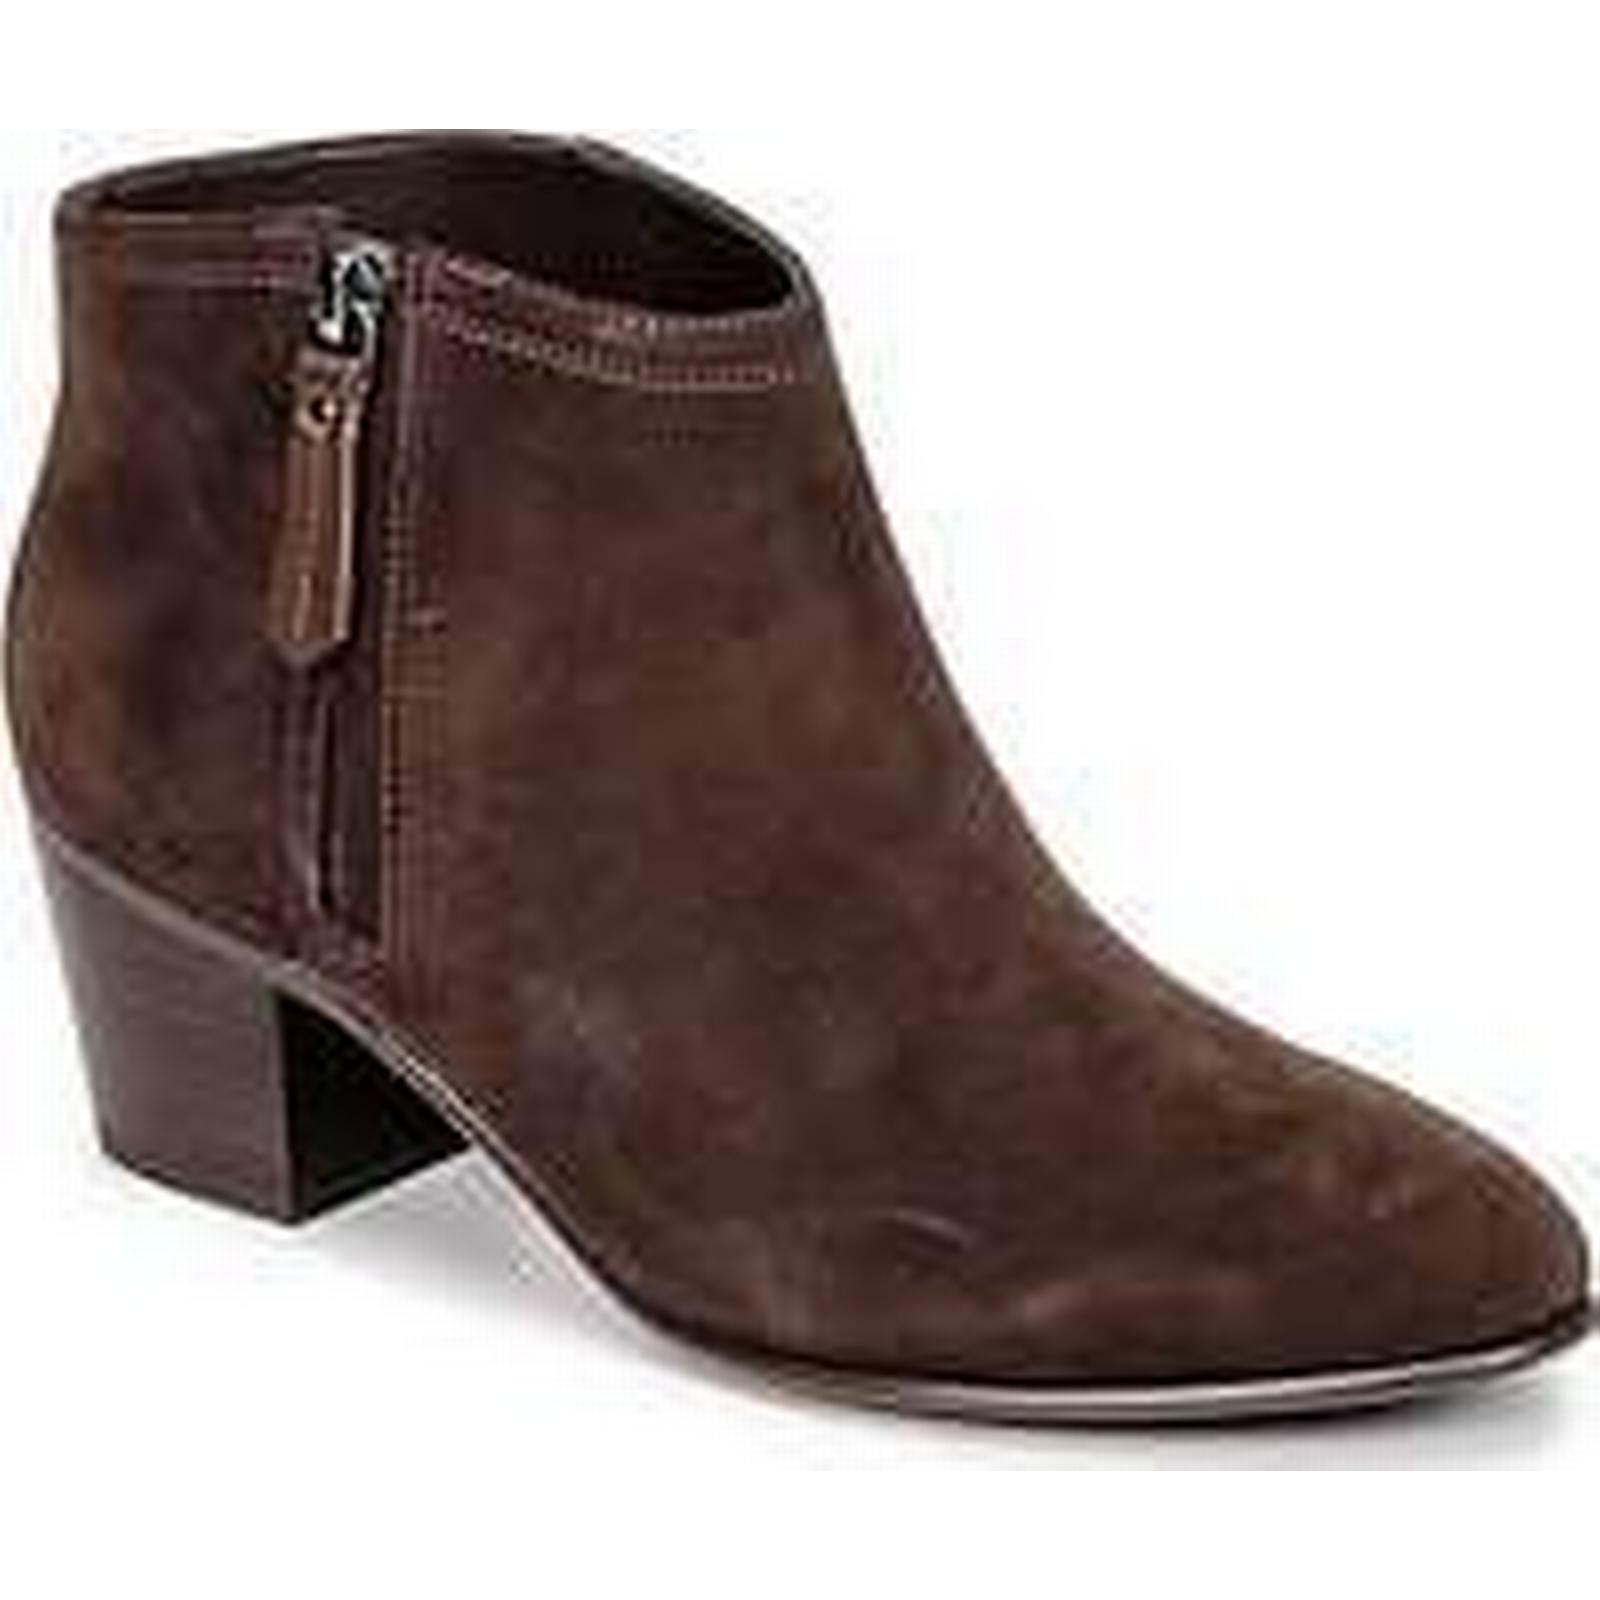 Spartoo.co.uk Clarks MAYPEARL ALICE in women's Low Ankle Boots in ALICE Brown c18687